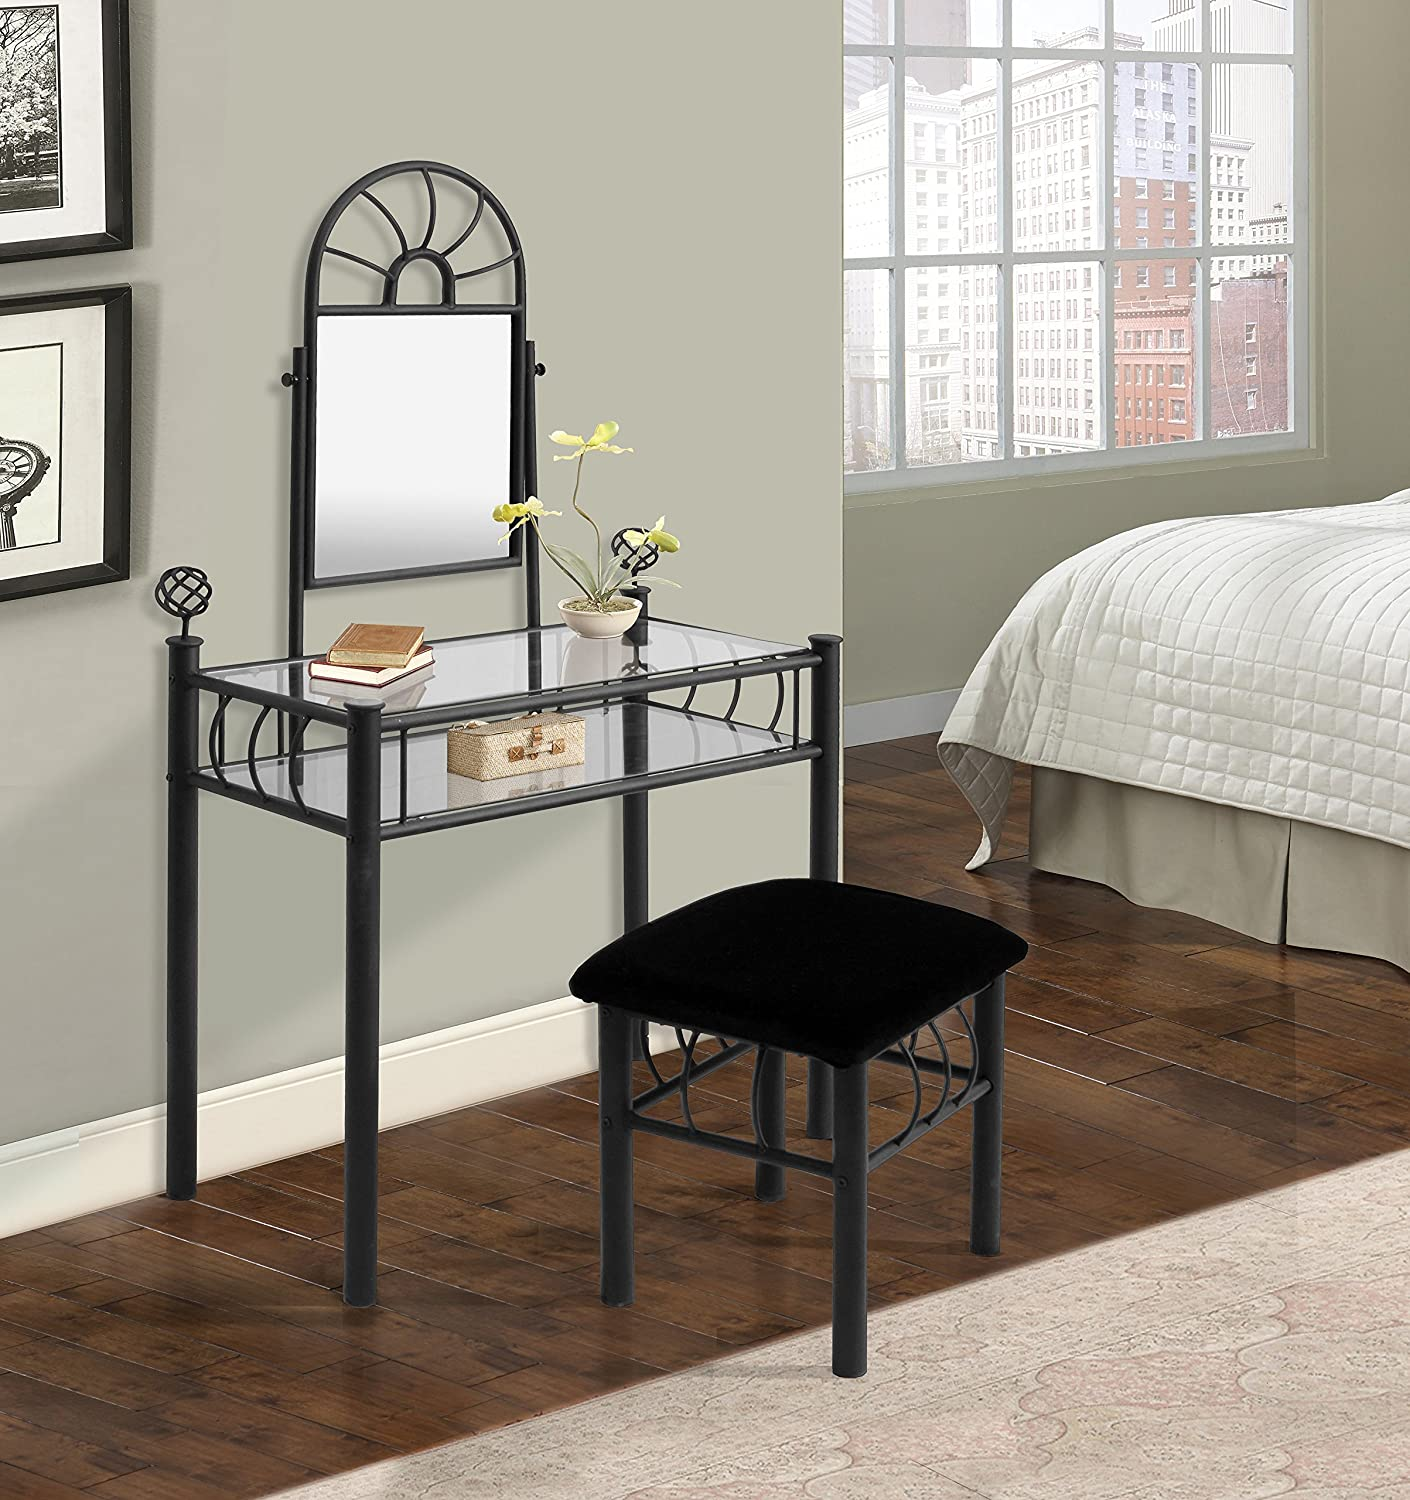 Home Source Industries 200-6032 Vanity with Upholstered Bench, Black